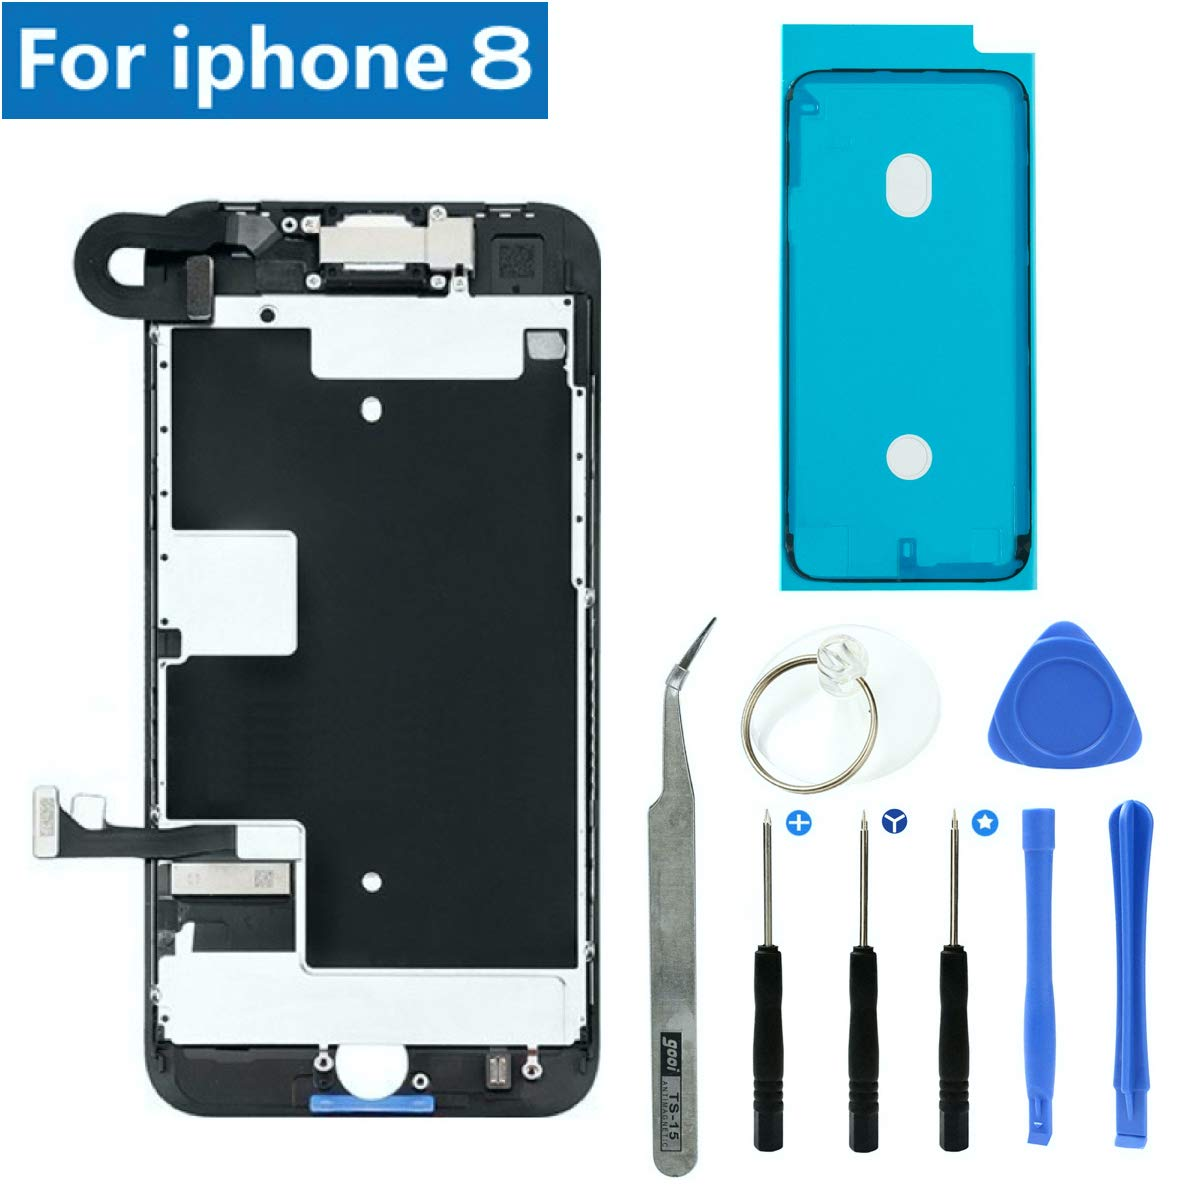 Full Screen Replacement LCD 3D Touch Assembly Front Camera Ear Speaker Shield Plate with Frame Adhesive and Repair Tools for iPhone 8 4.7 inch (Black) by JC Mobile Parts